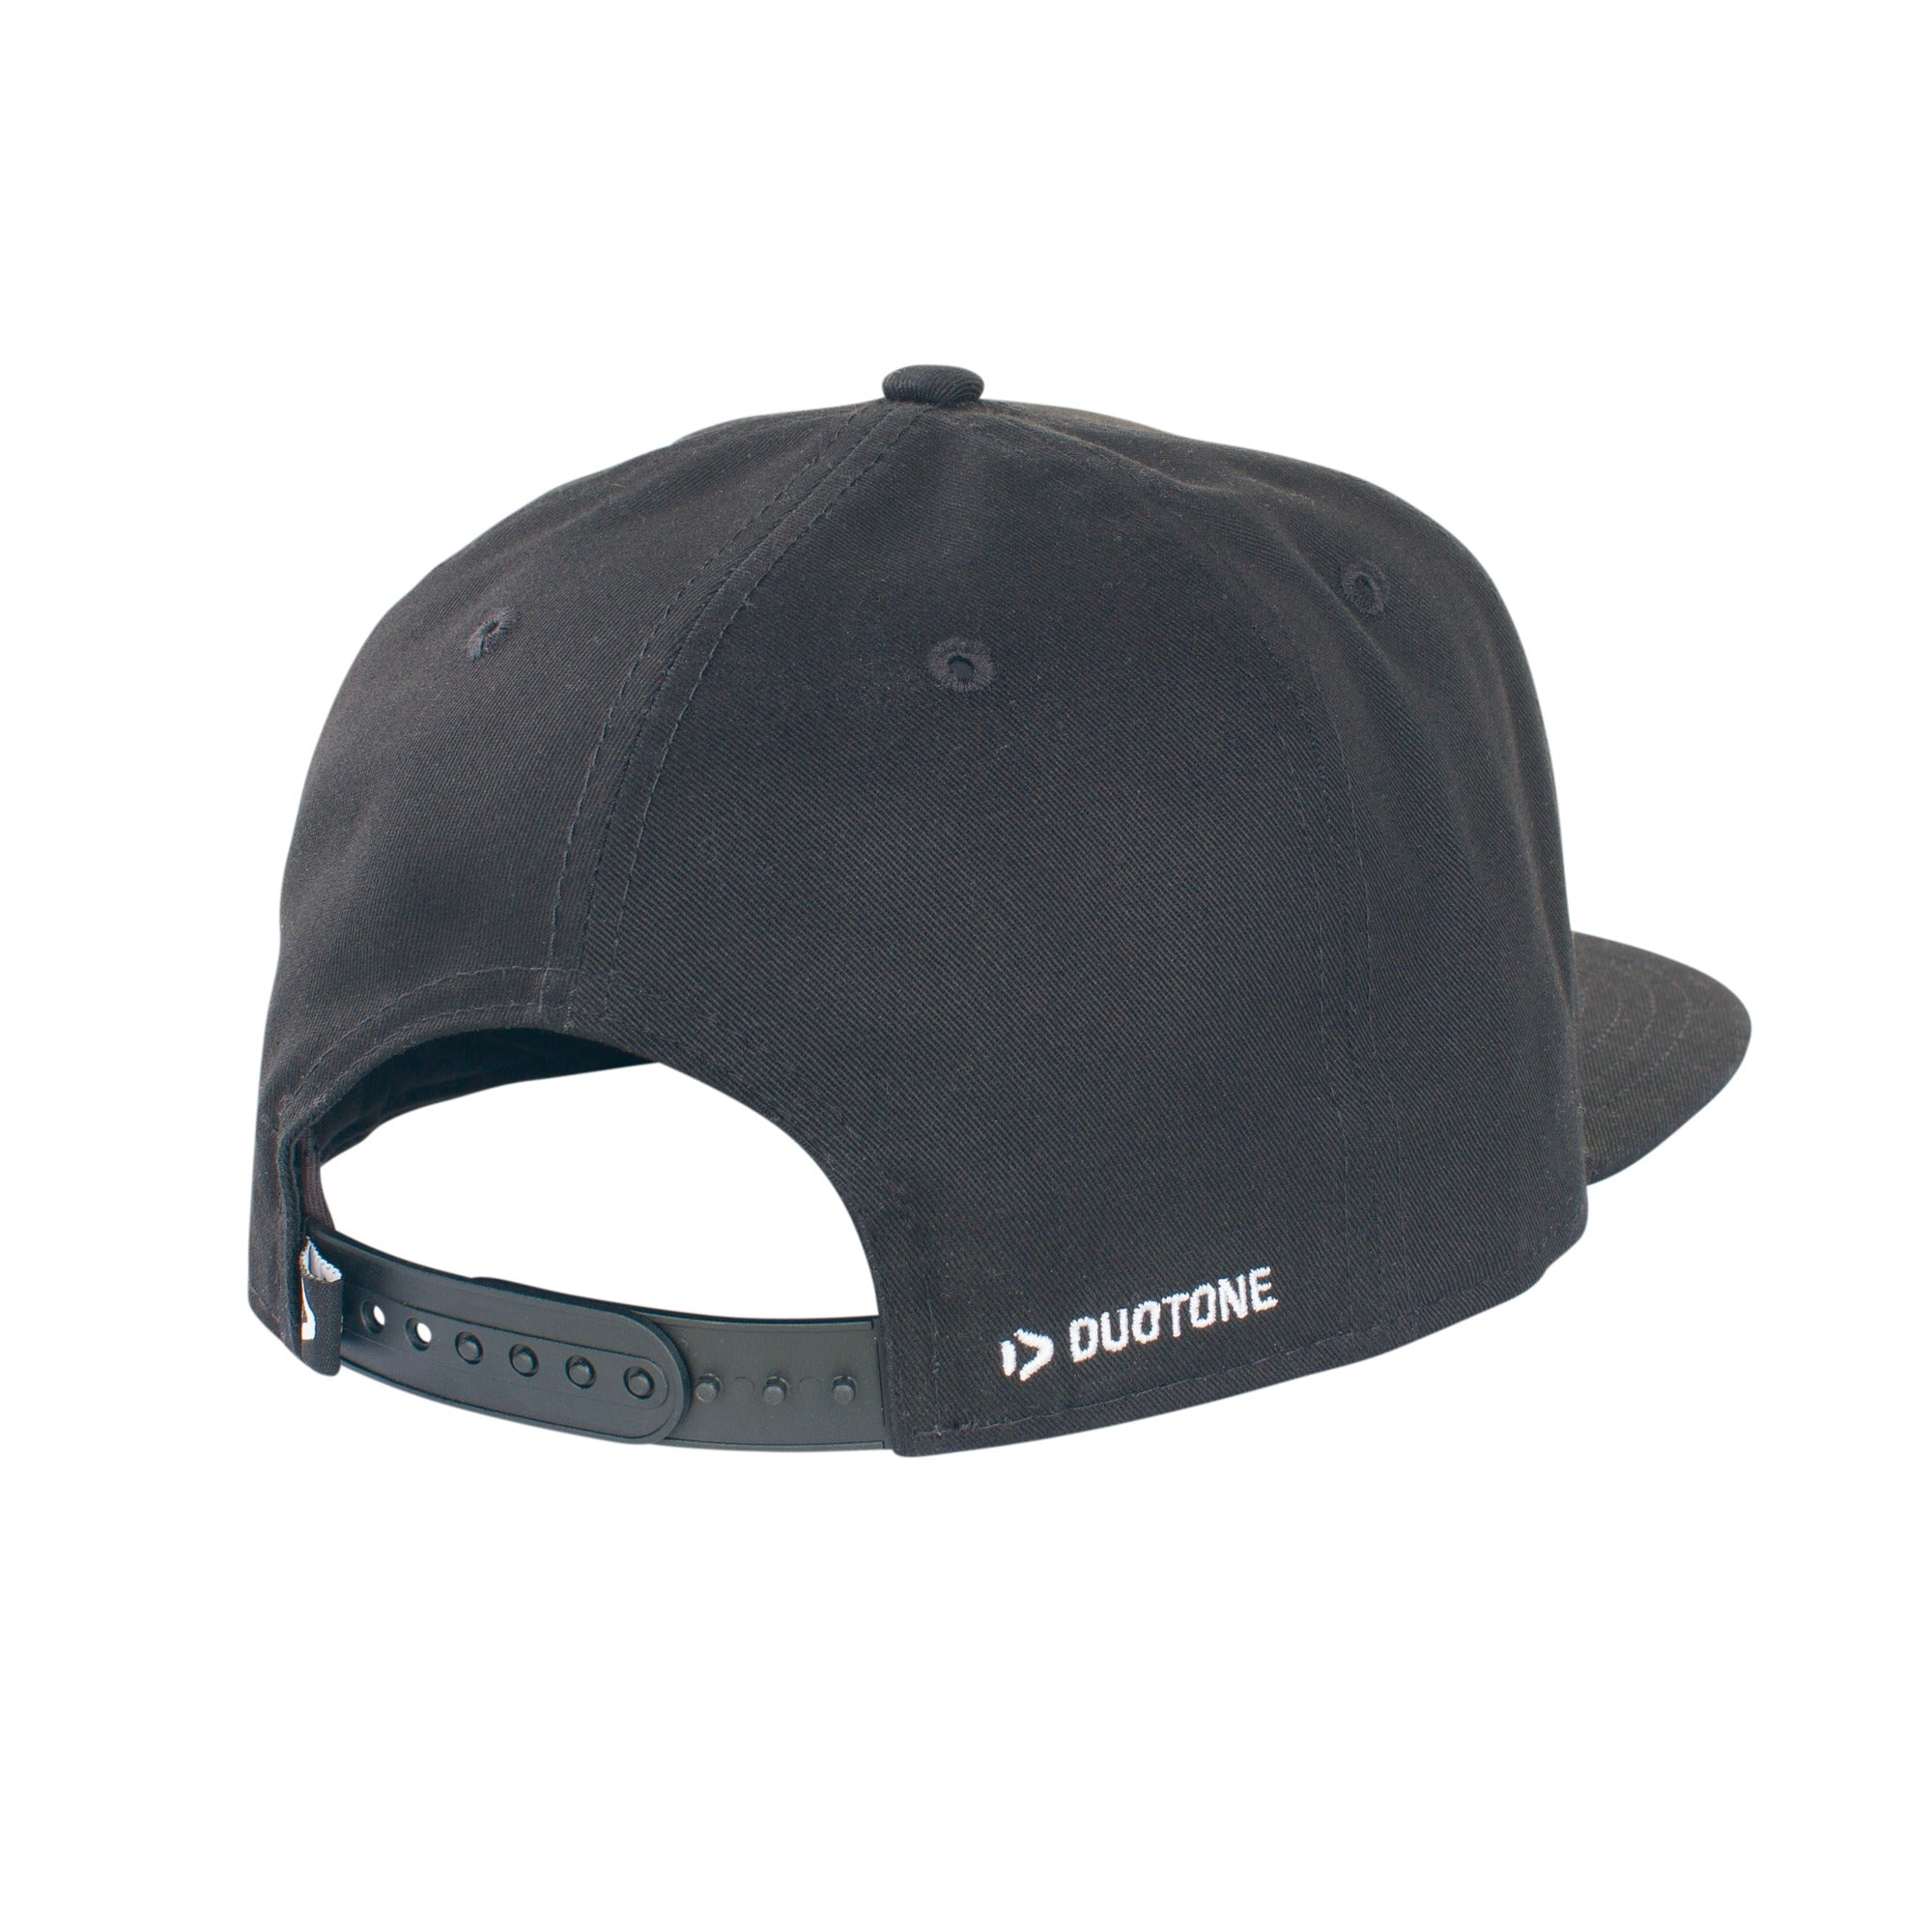 NEW ERA CAP 9FIFTY A-FRAME LOGO DARK GREY